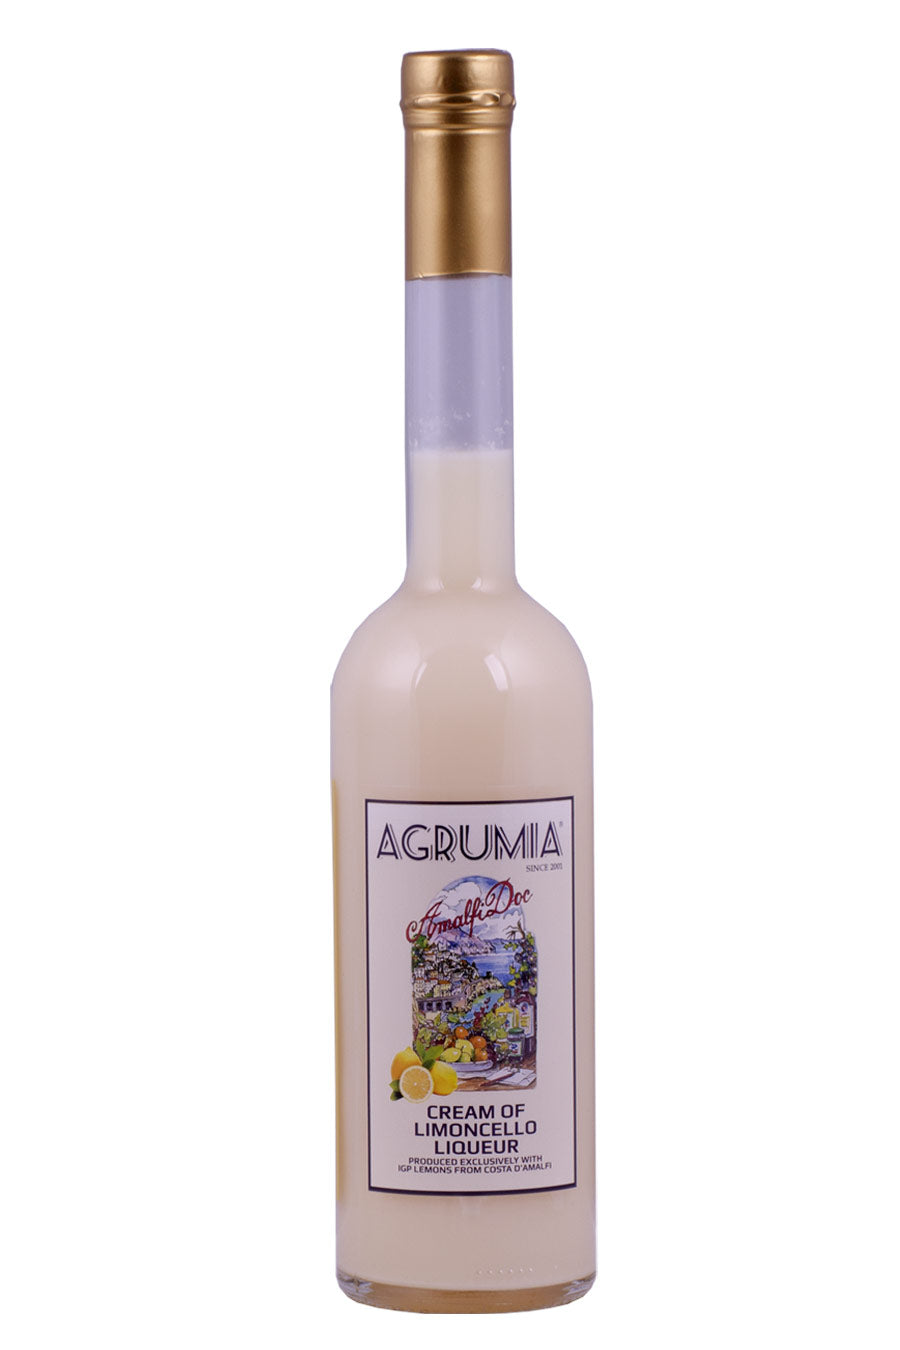 Agrumia Cream of Limoncello Liqueur 50cl - Agrumia